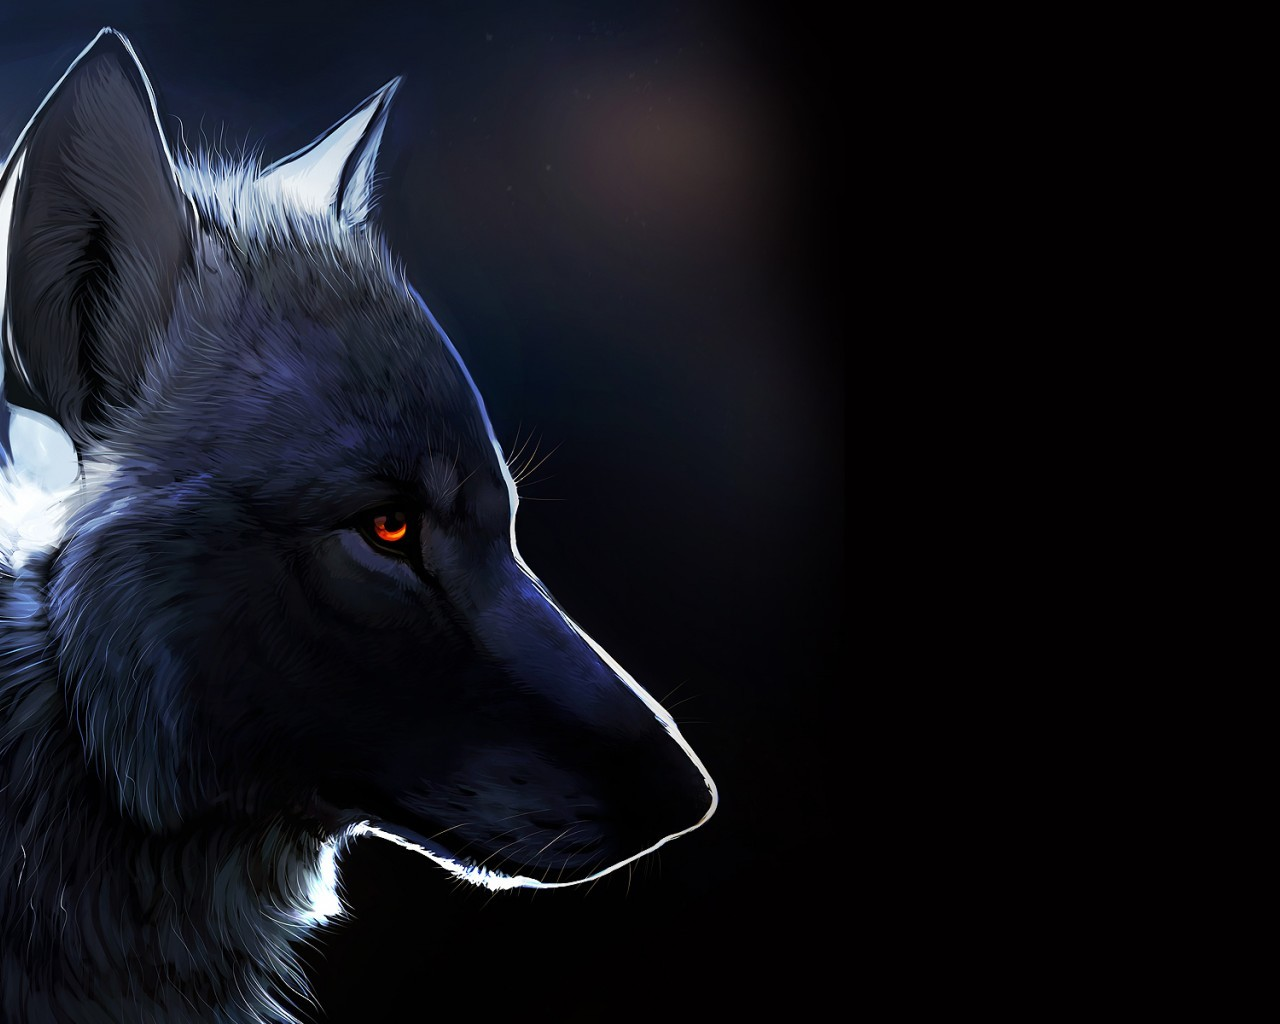 20193 download wallpaper Animals, Wolfs, Pictures screensavers and pictures for free